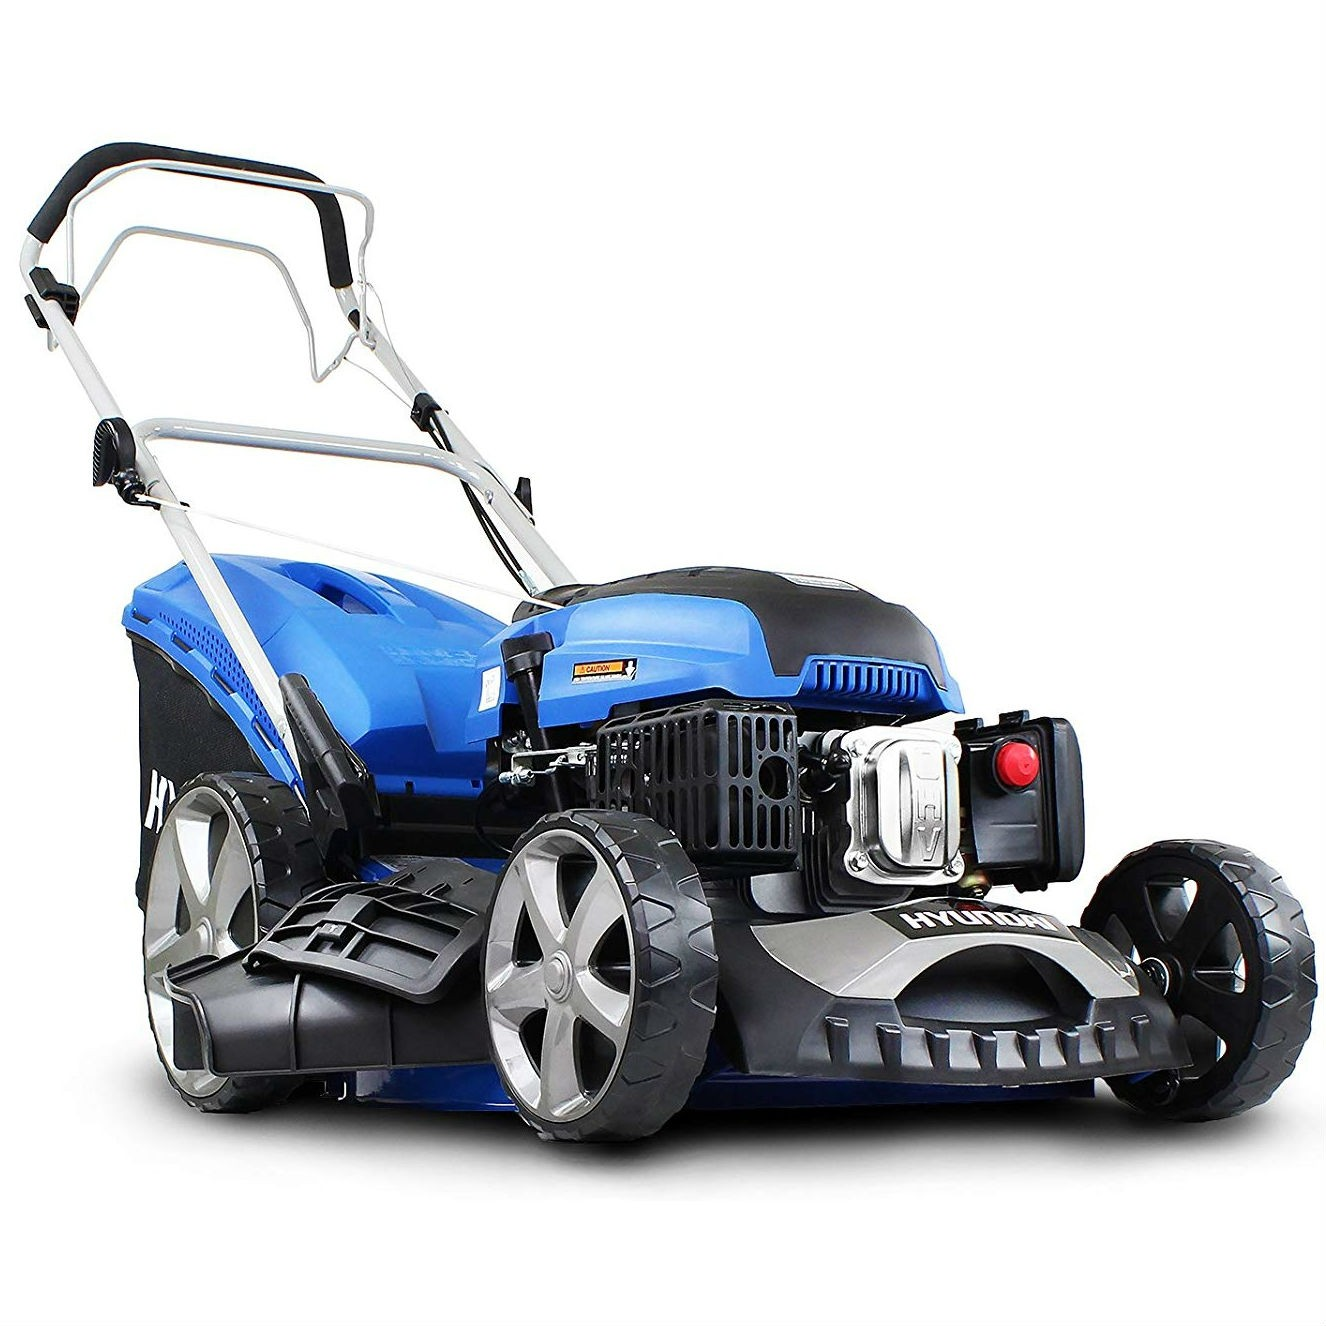 Hyundai HYM510SP Self-Propelled Petrol Lawnmower